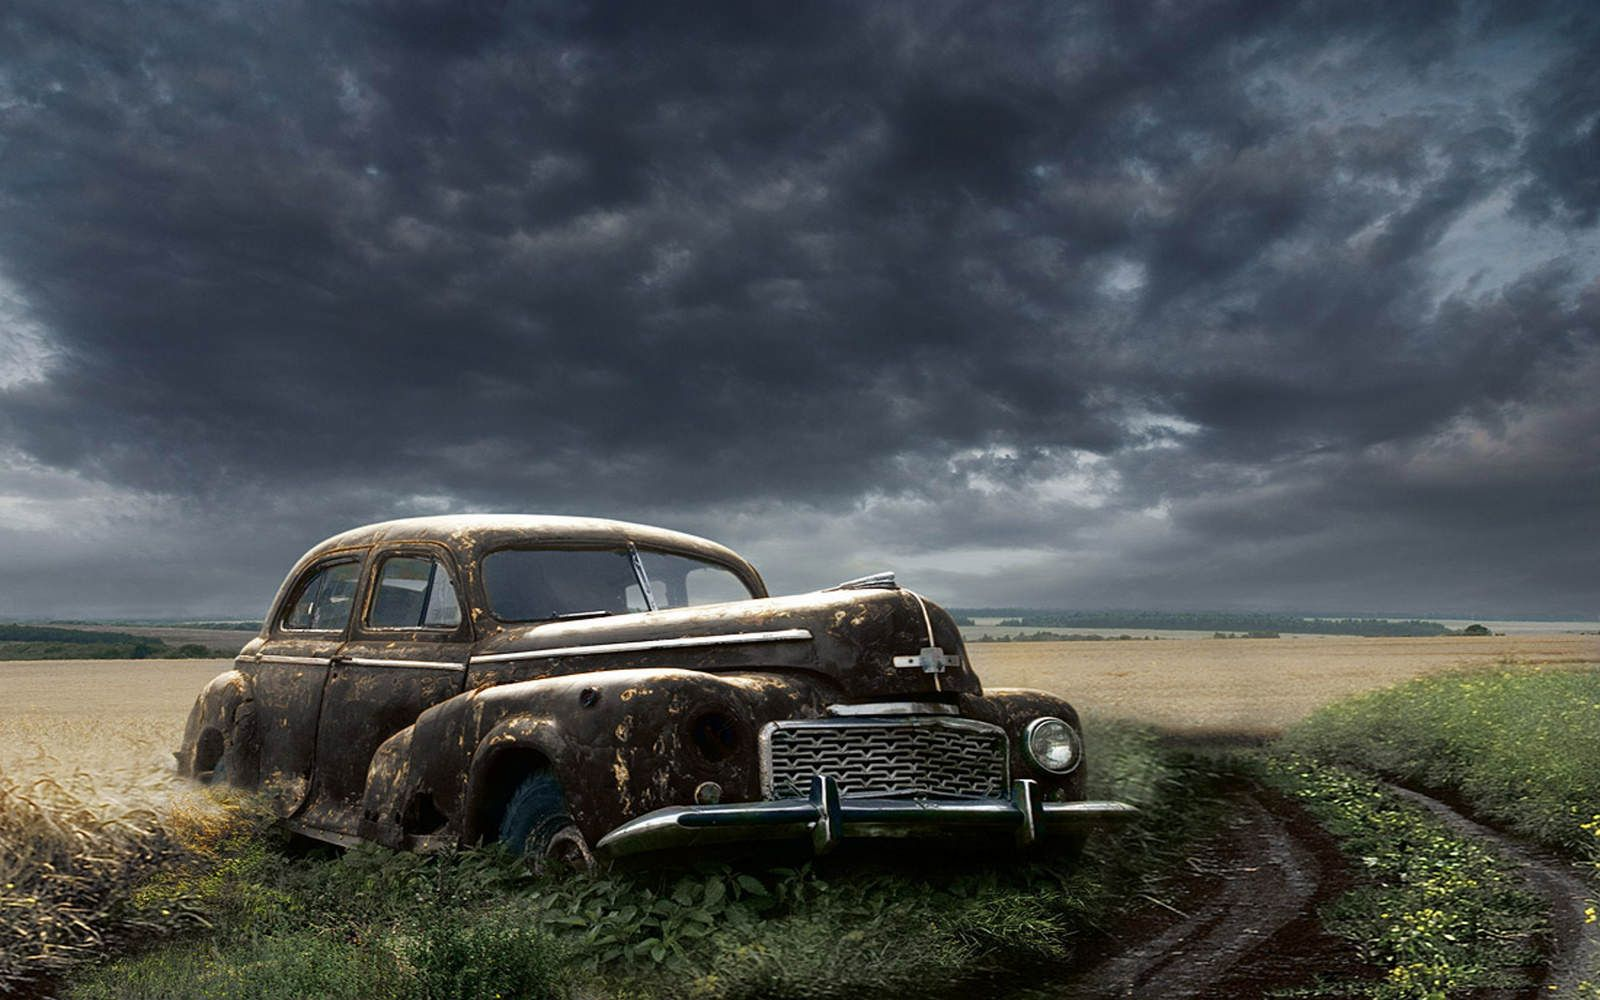 Old Abandoned Car Abandoned Cars Old Cars Car Wallpapers